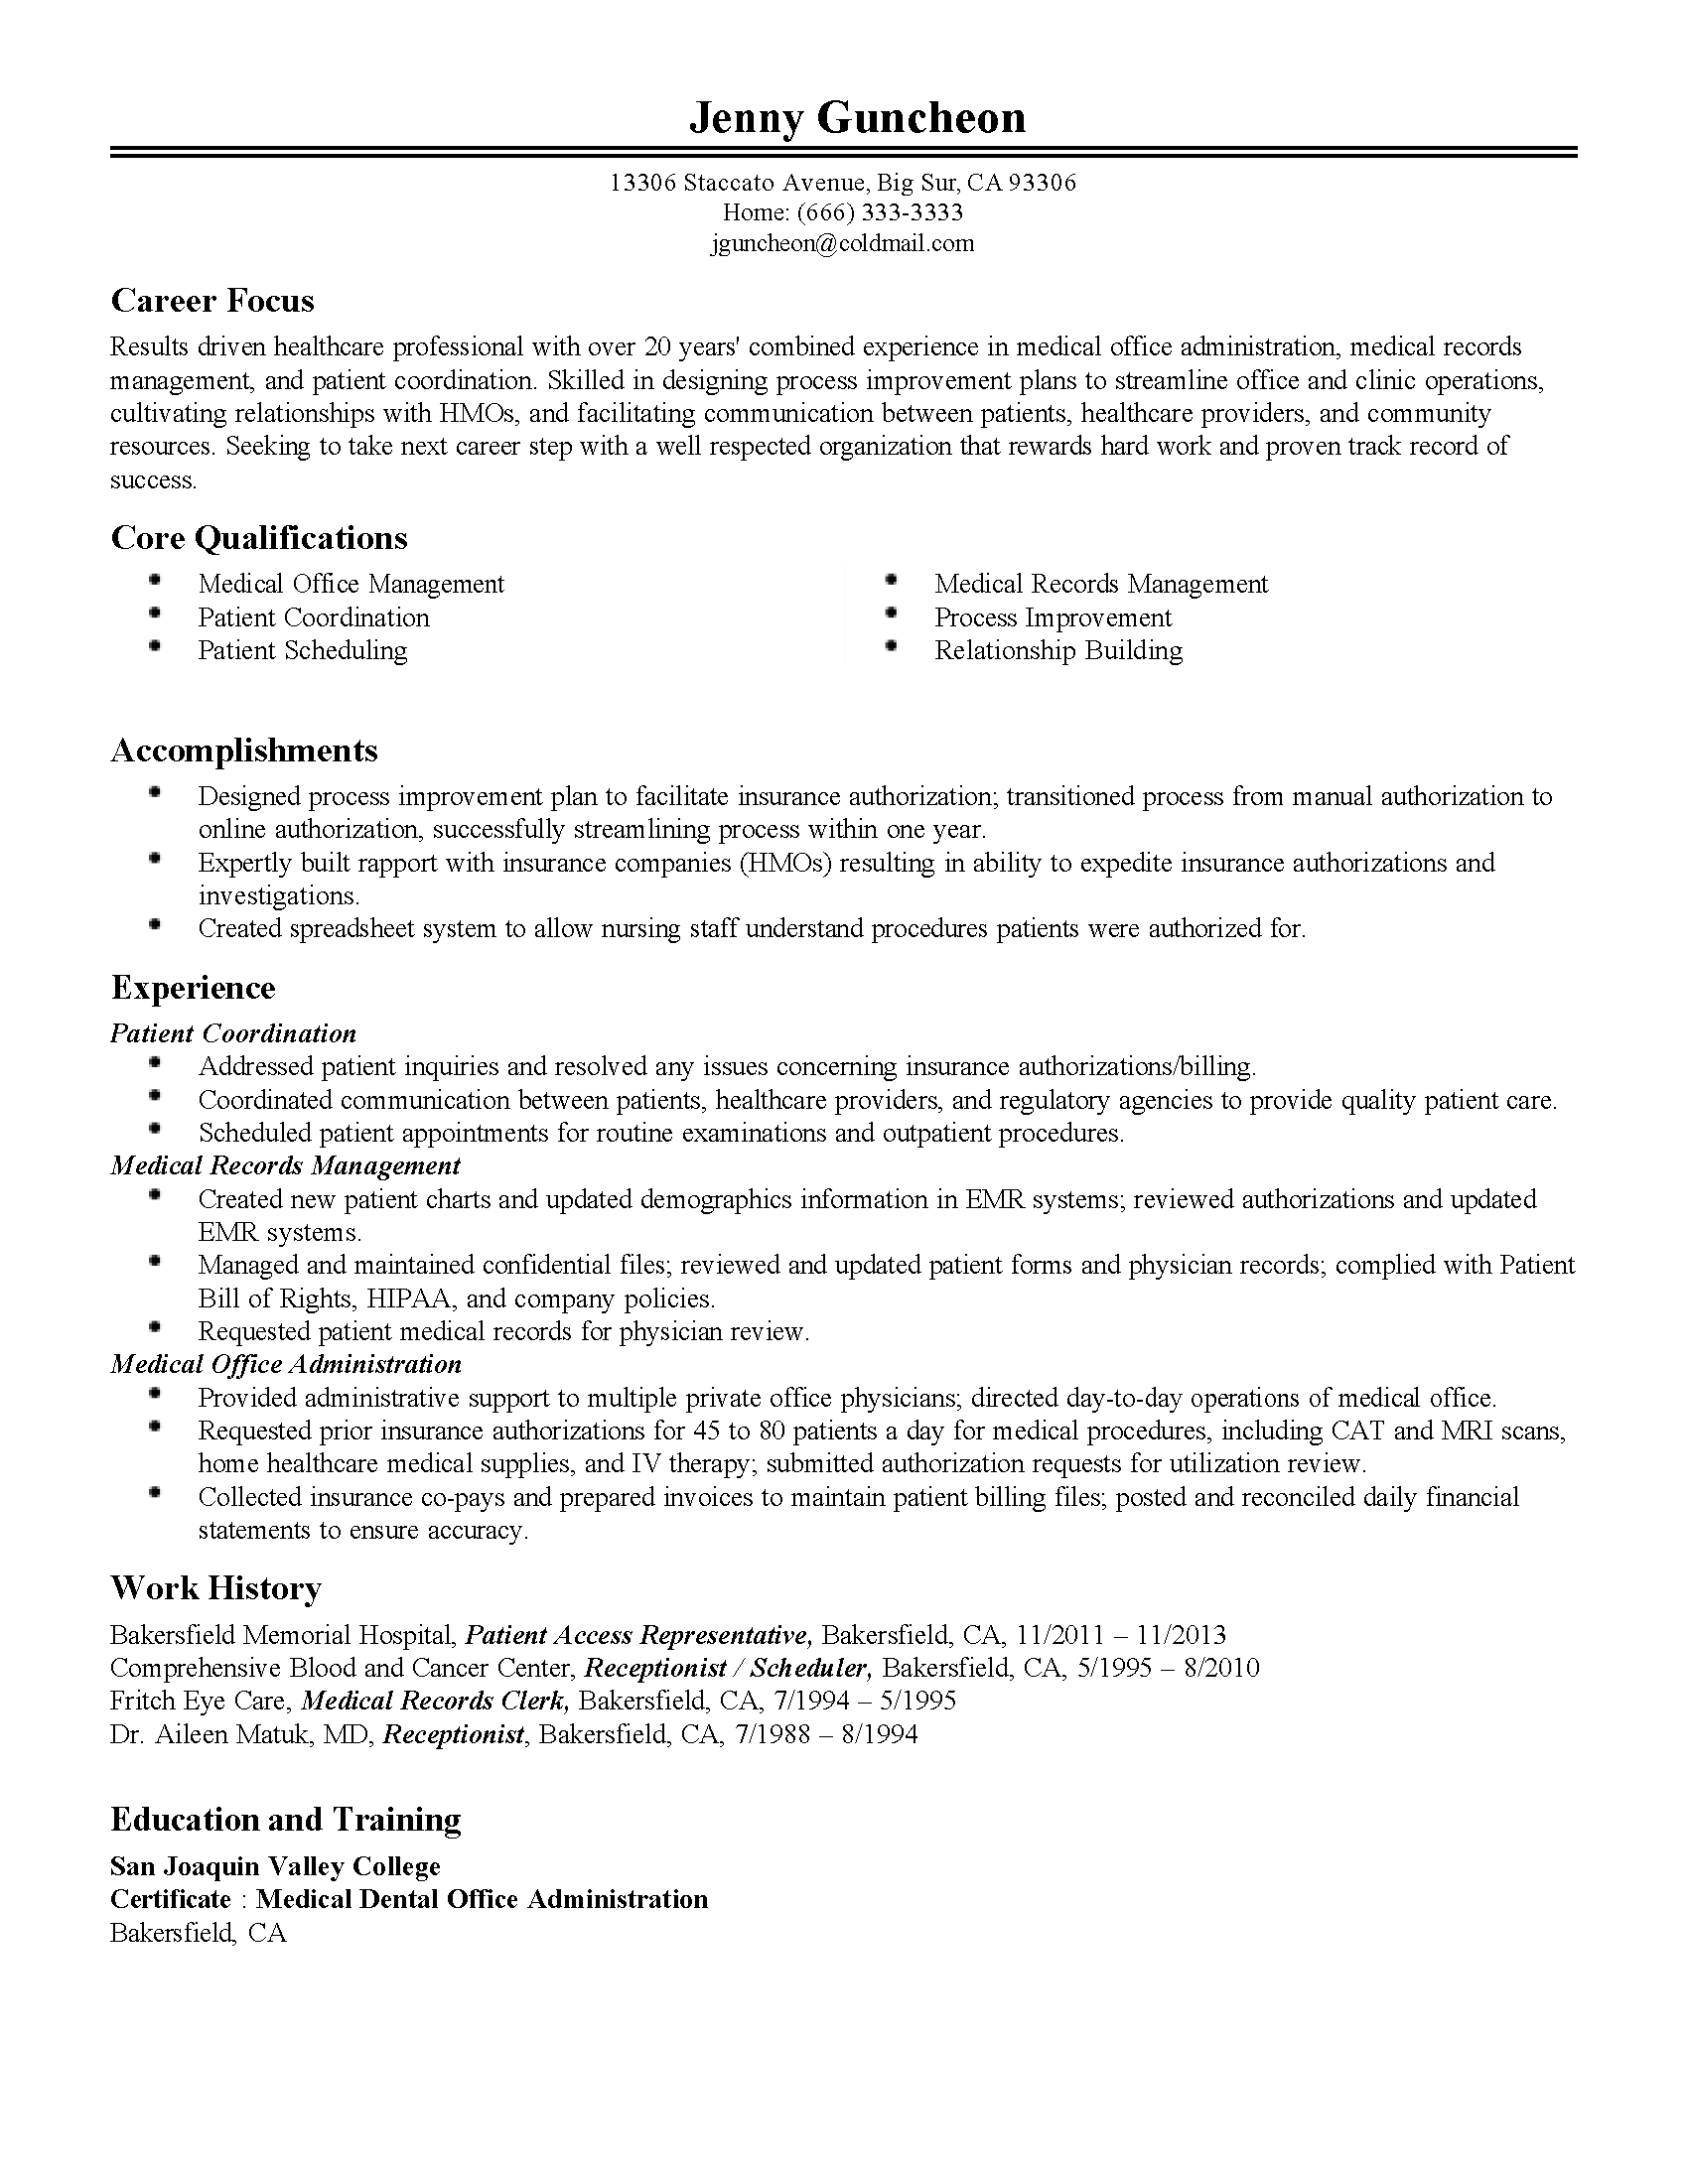 Medical Investigator Cover Letter Cover Letter Shipping And Receiving Manager Job Description For